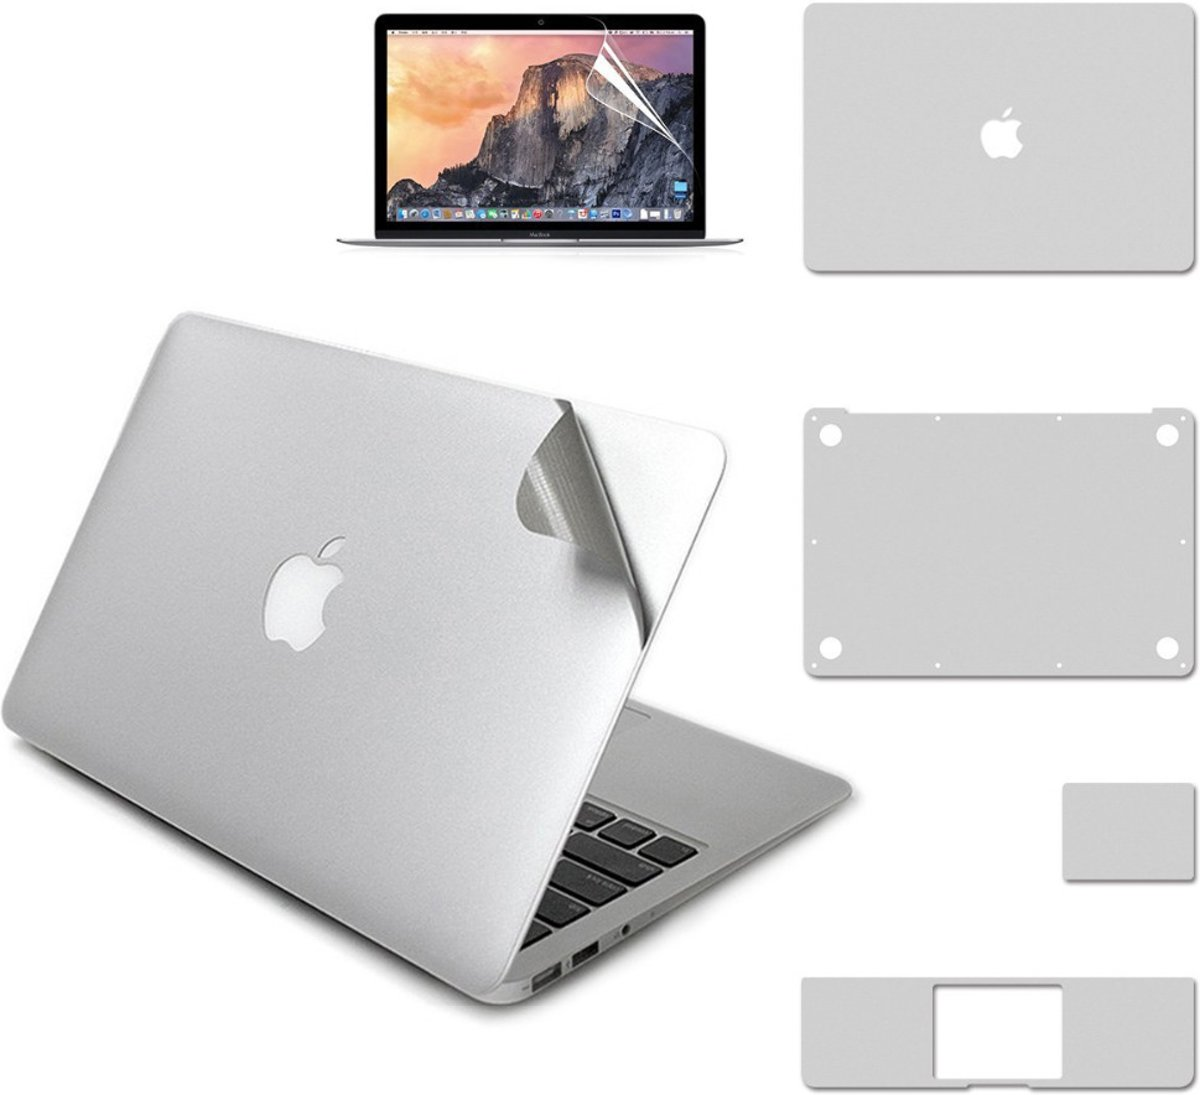 5-in-1 Nano Body Guard Anti Scratch 3M Protector voor Apple MacBook Pro 15 inch (Touch Bar) A1707 - Zilver